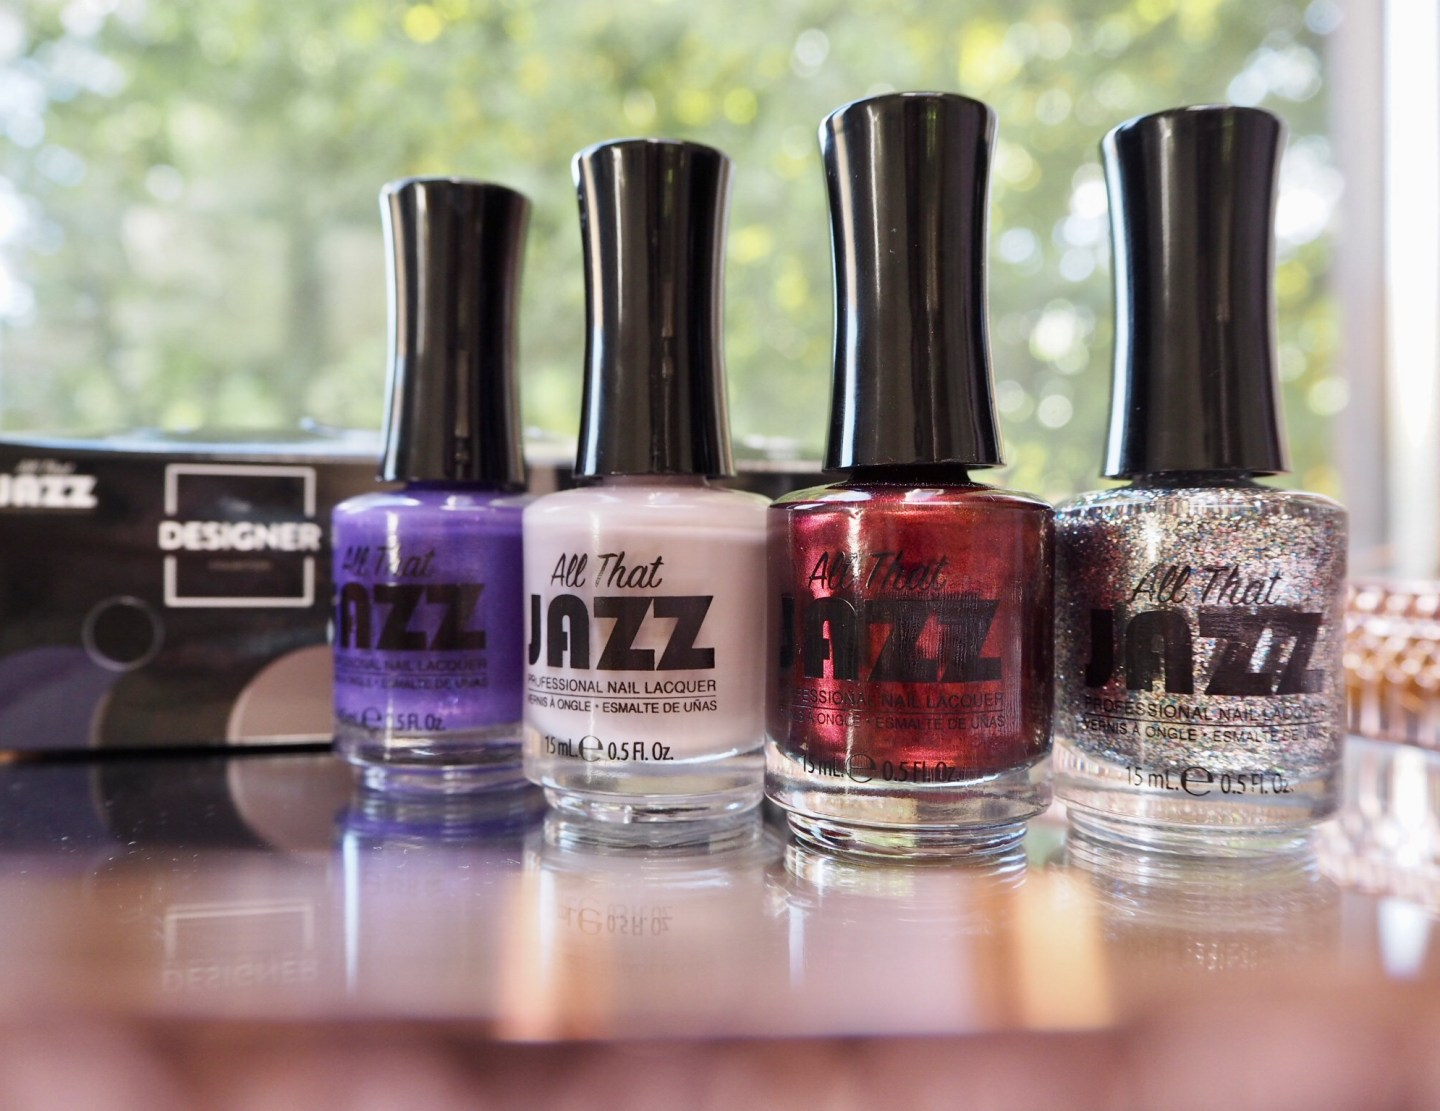 All that Jazz Nail Lacquer The Designer Collection